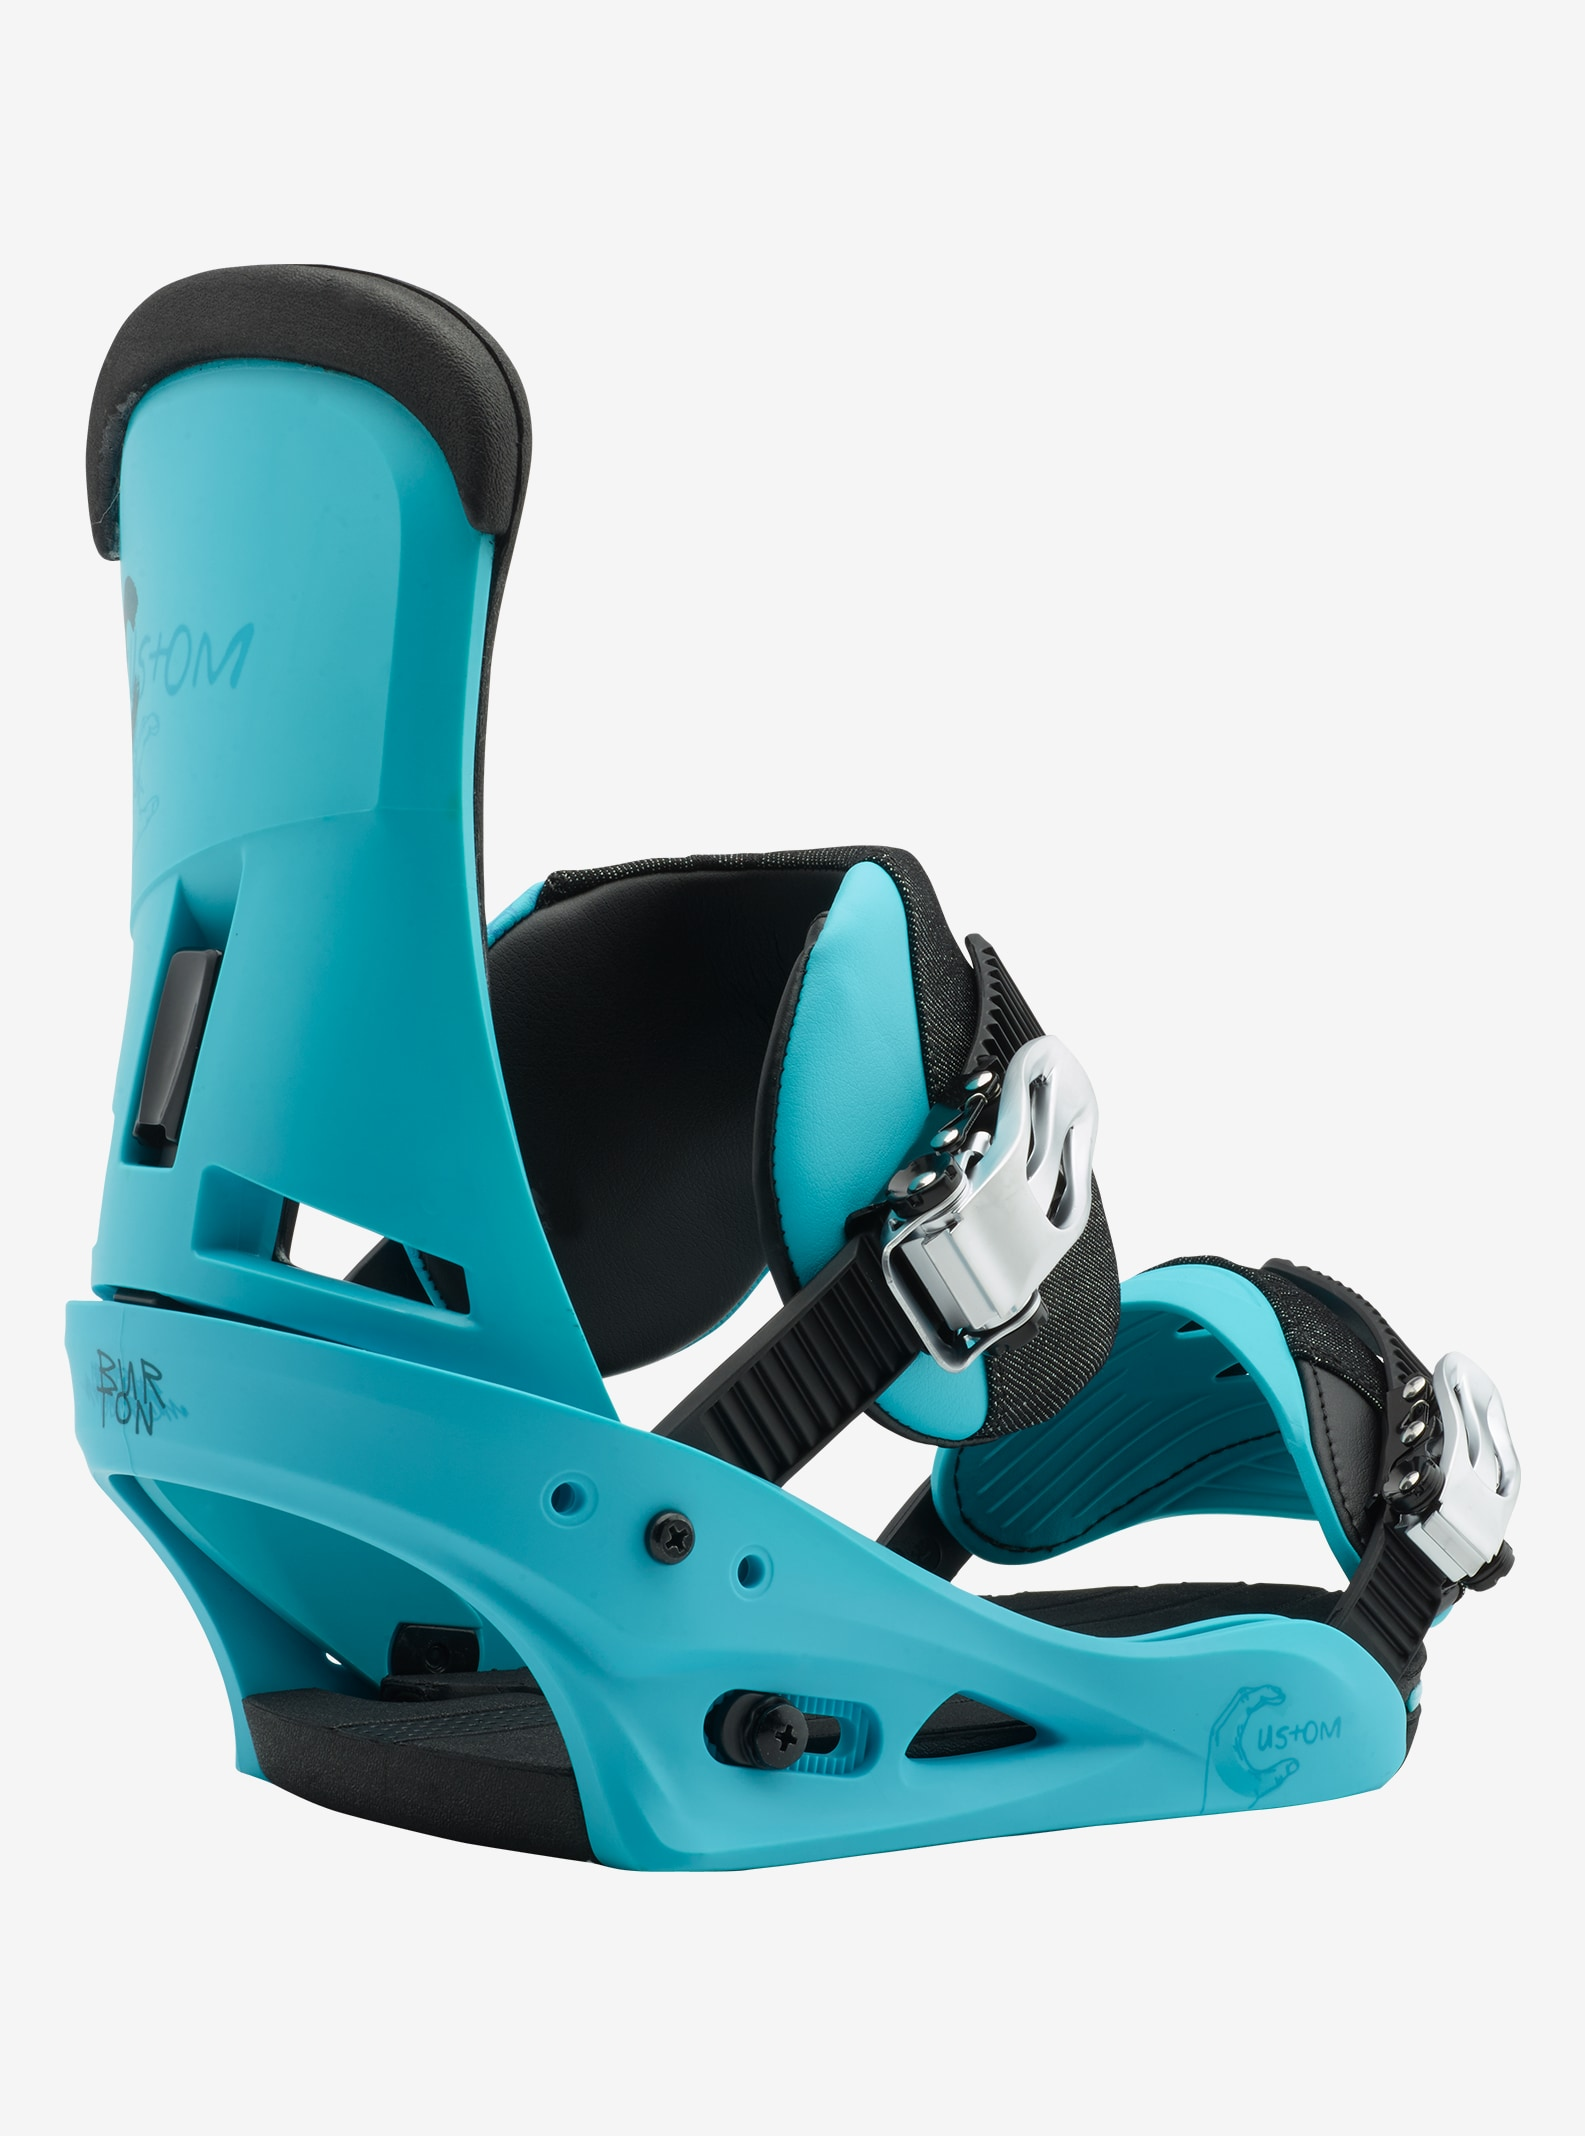 Men's Burton Custom Snowboard Binding shown in CS Blue